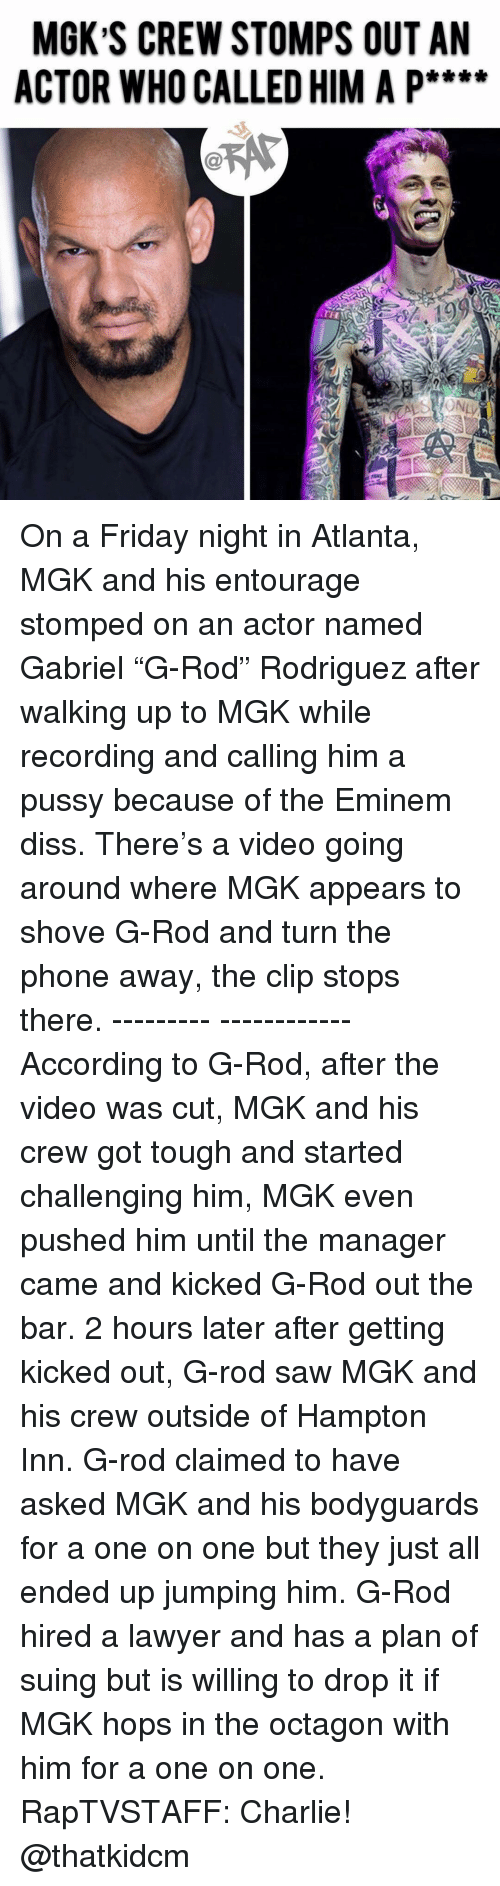 """Charlie, Diss, and Eminem: MGK S CREW STOMPS OUT AN  ACTOR WHO CALLED HIM A P**** On a Friday night in Atlanta, MGK and his entourage stomped on an actor named Gabriel """"G-Rod"""" Rodriguez after walking up to MGK while recording and calling him a pussy because of the Eminem diss. There's a video going around where MGK appears to shove G-Rod and turn the phone away, the clip stops there. --------- ------------According to G-Rod, after the video was cut, MGK and his crew got tough and started challenging him, MGK even pushed him until the manager came and kicked G-Rod out the bar. 2 hours later after getting kicked out, G-rod saw MGK and his crew outside of Hampton Inn. G-rod claimed to have asked MGK and his bodyguards for a one on one but they just all ended up jumping him. G-Rod hired a lawyer and has a plan of suing but is willing to drop it if MGK hops in the octagon with him for a one on one. RapTVSTAFF: Charlie! @thatkidcm"""